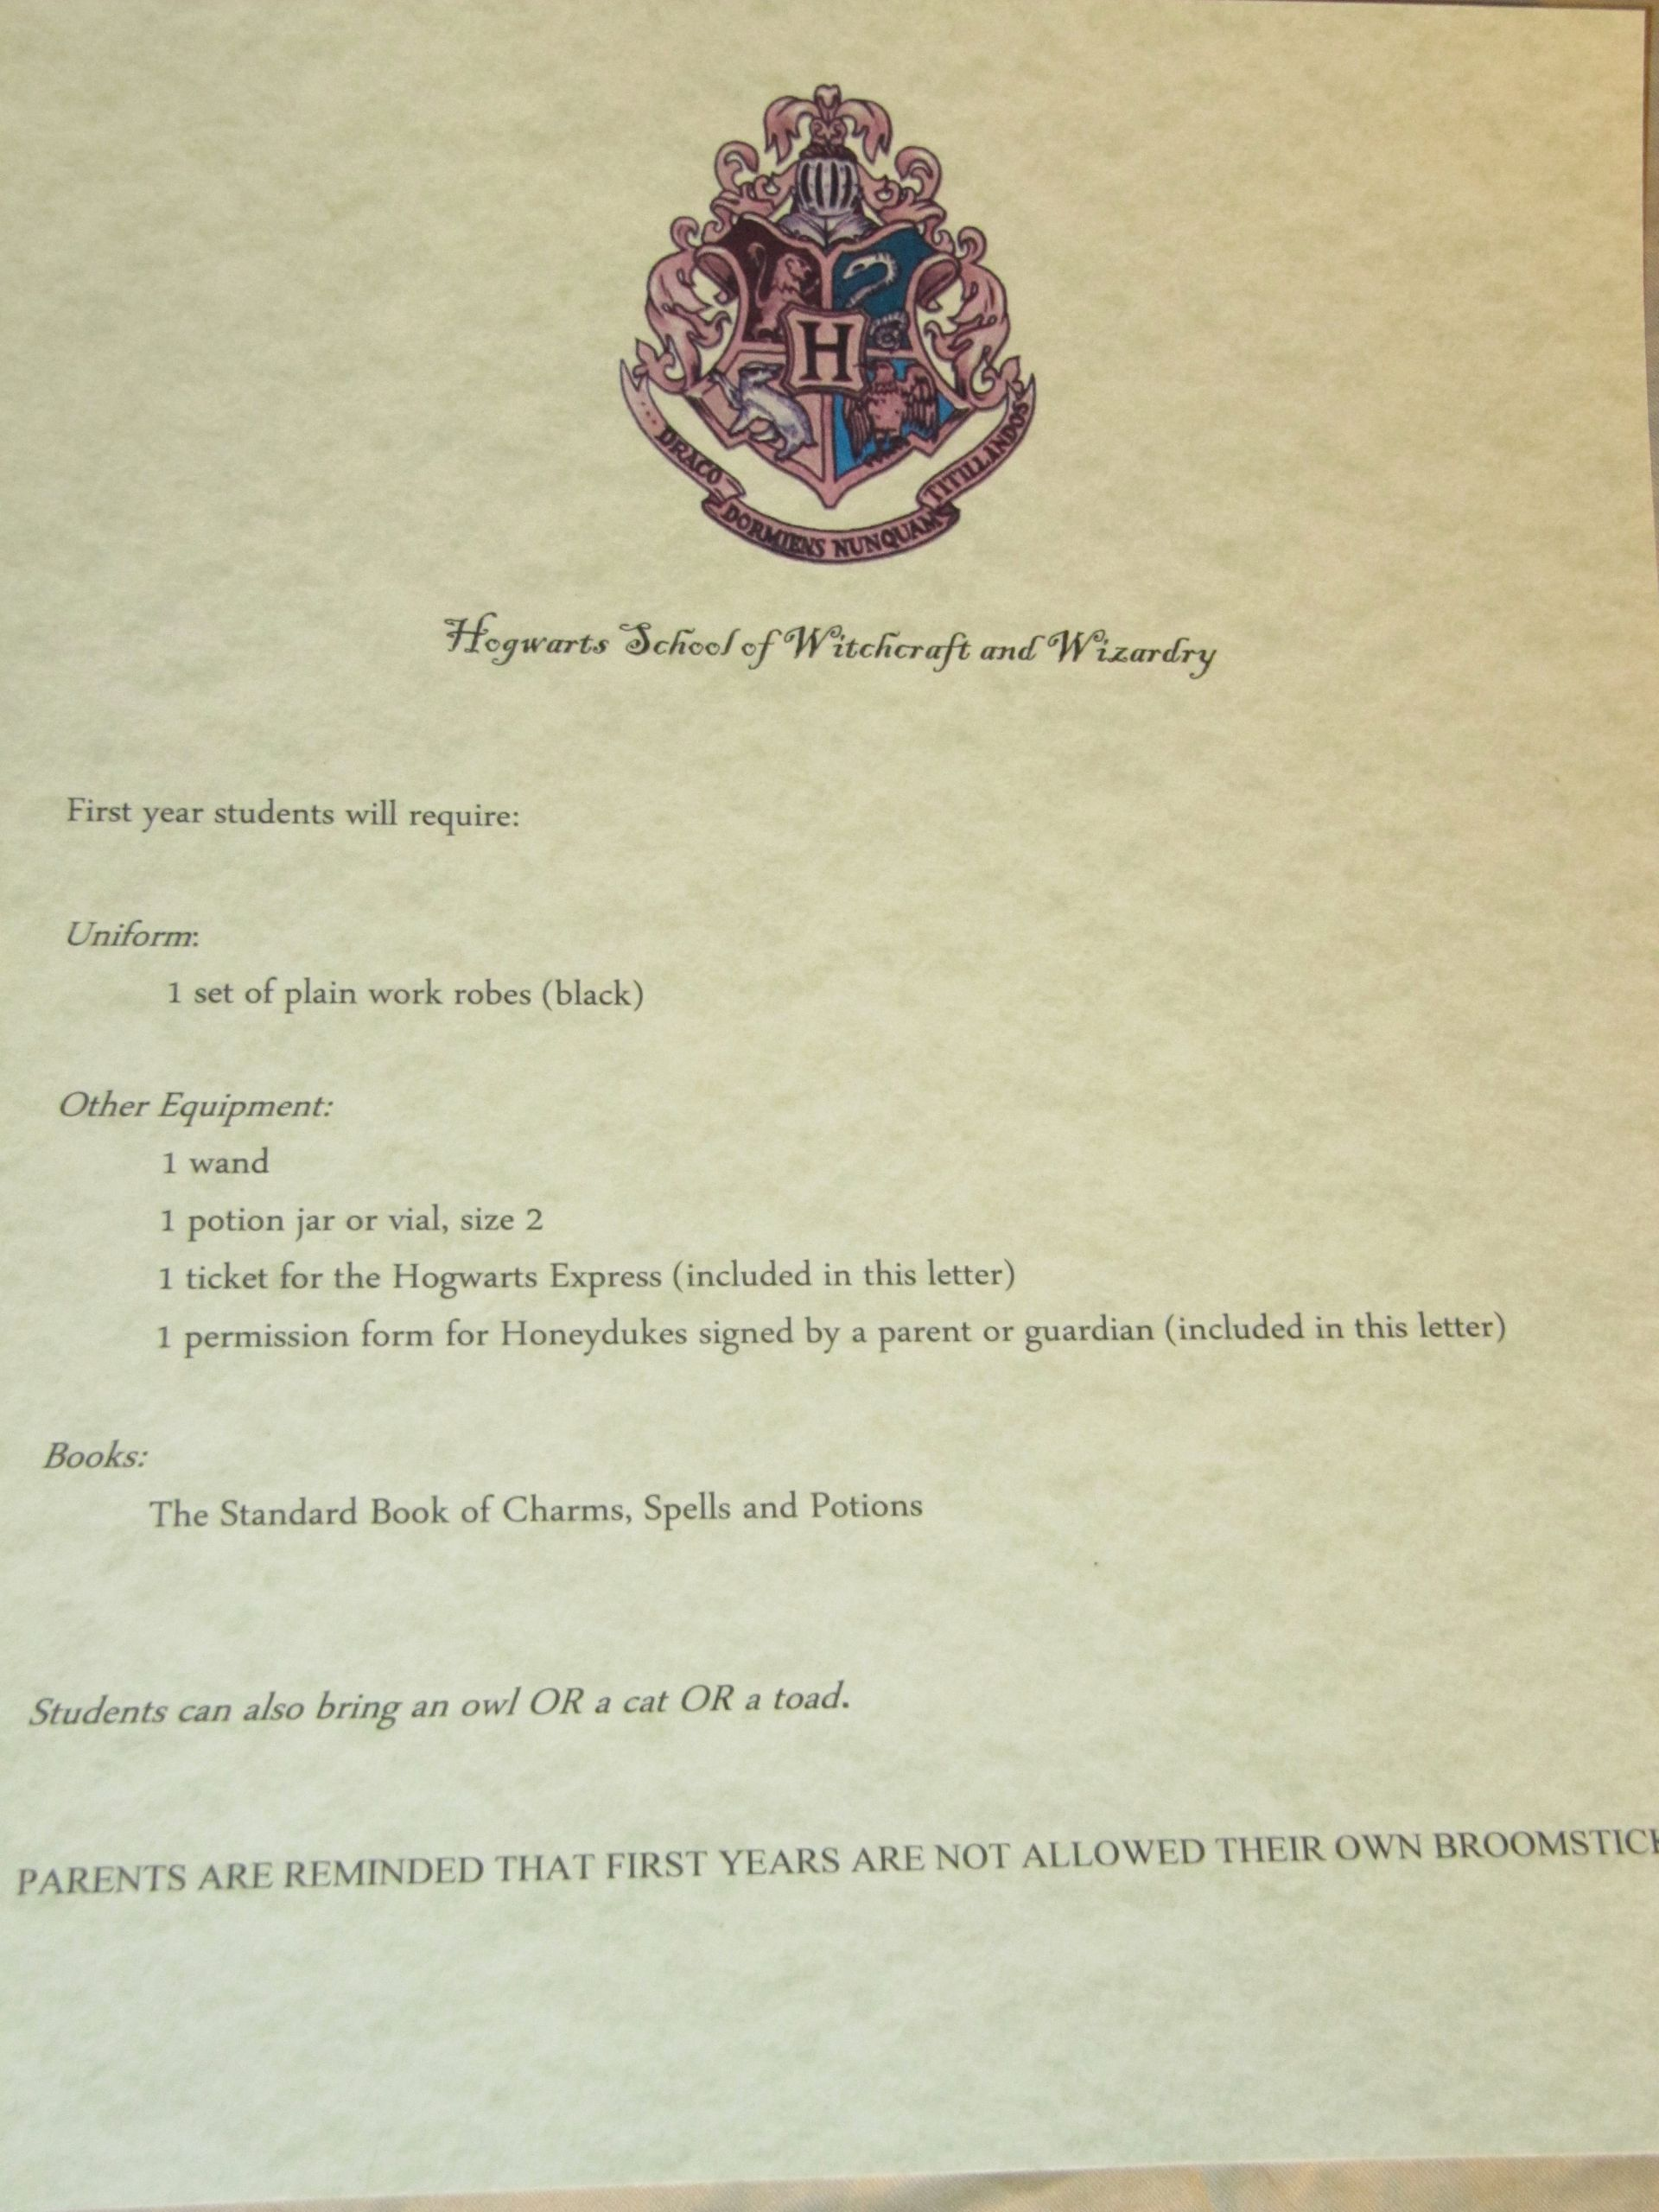 Uniform Certificate Of attendance Best Of Harry Potter Party Planning – Part 1 Invitations